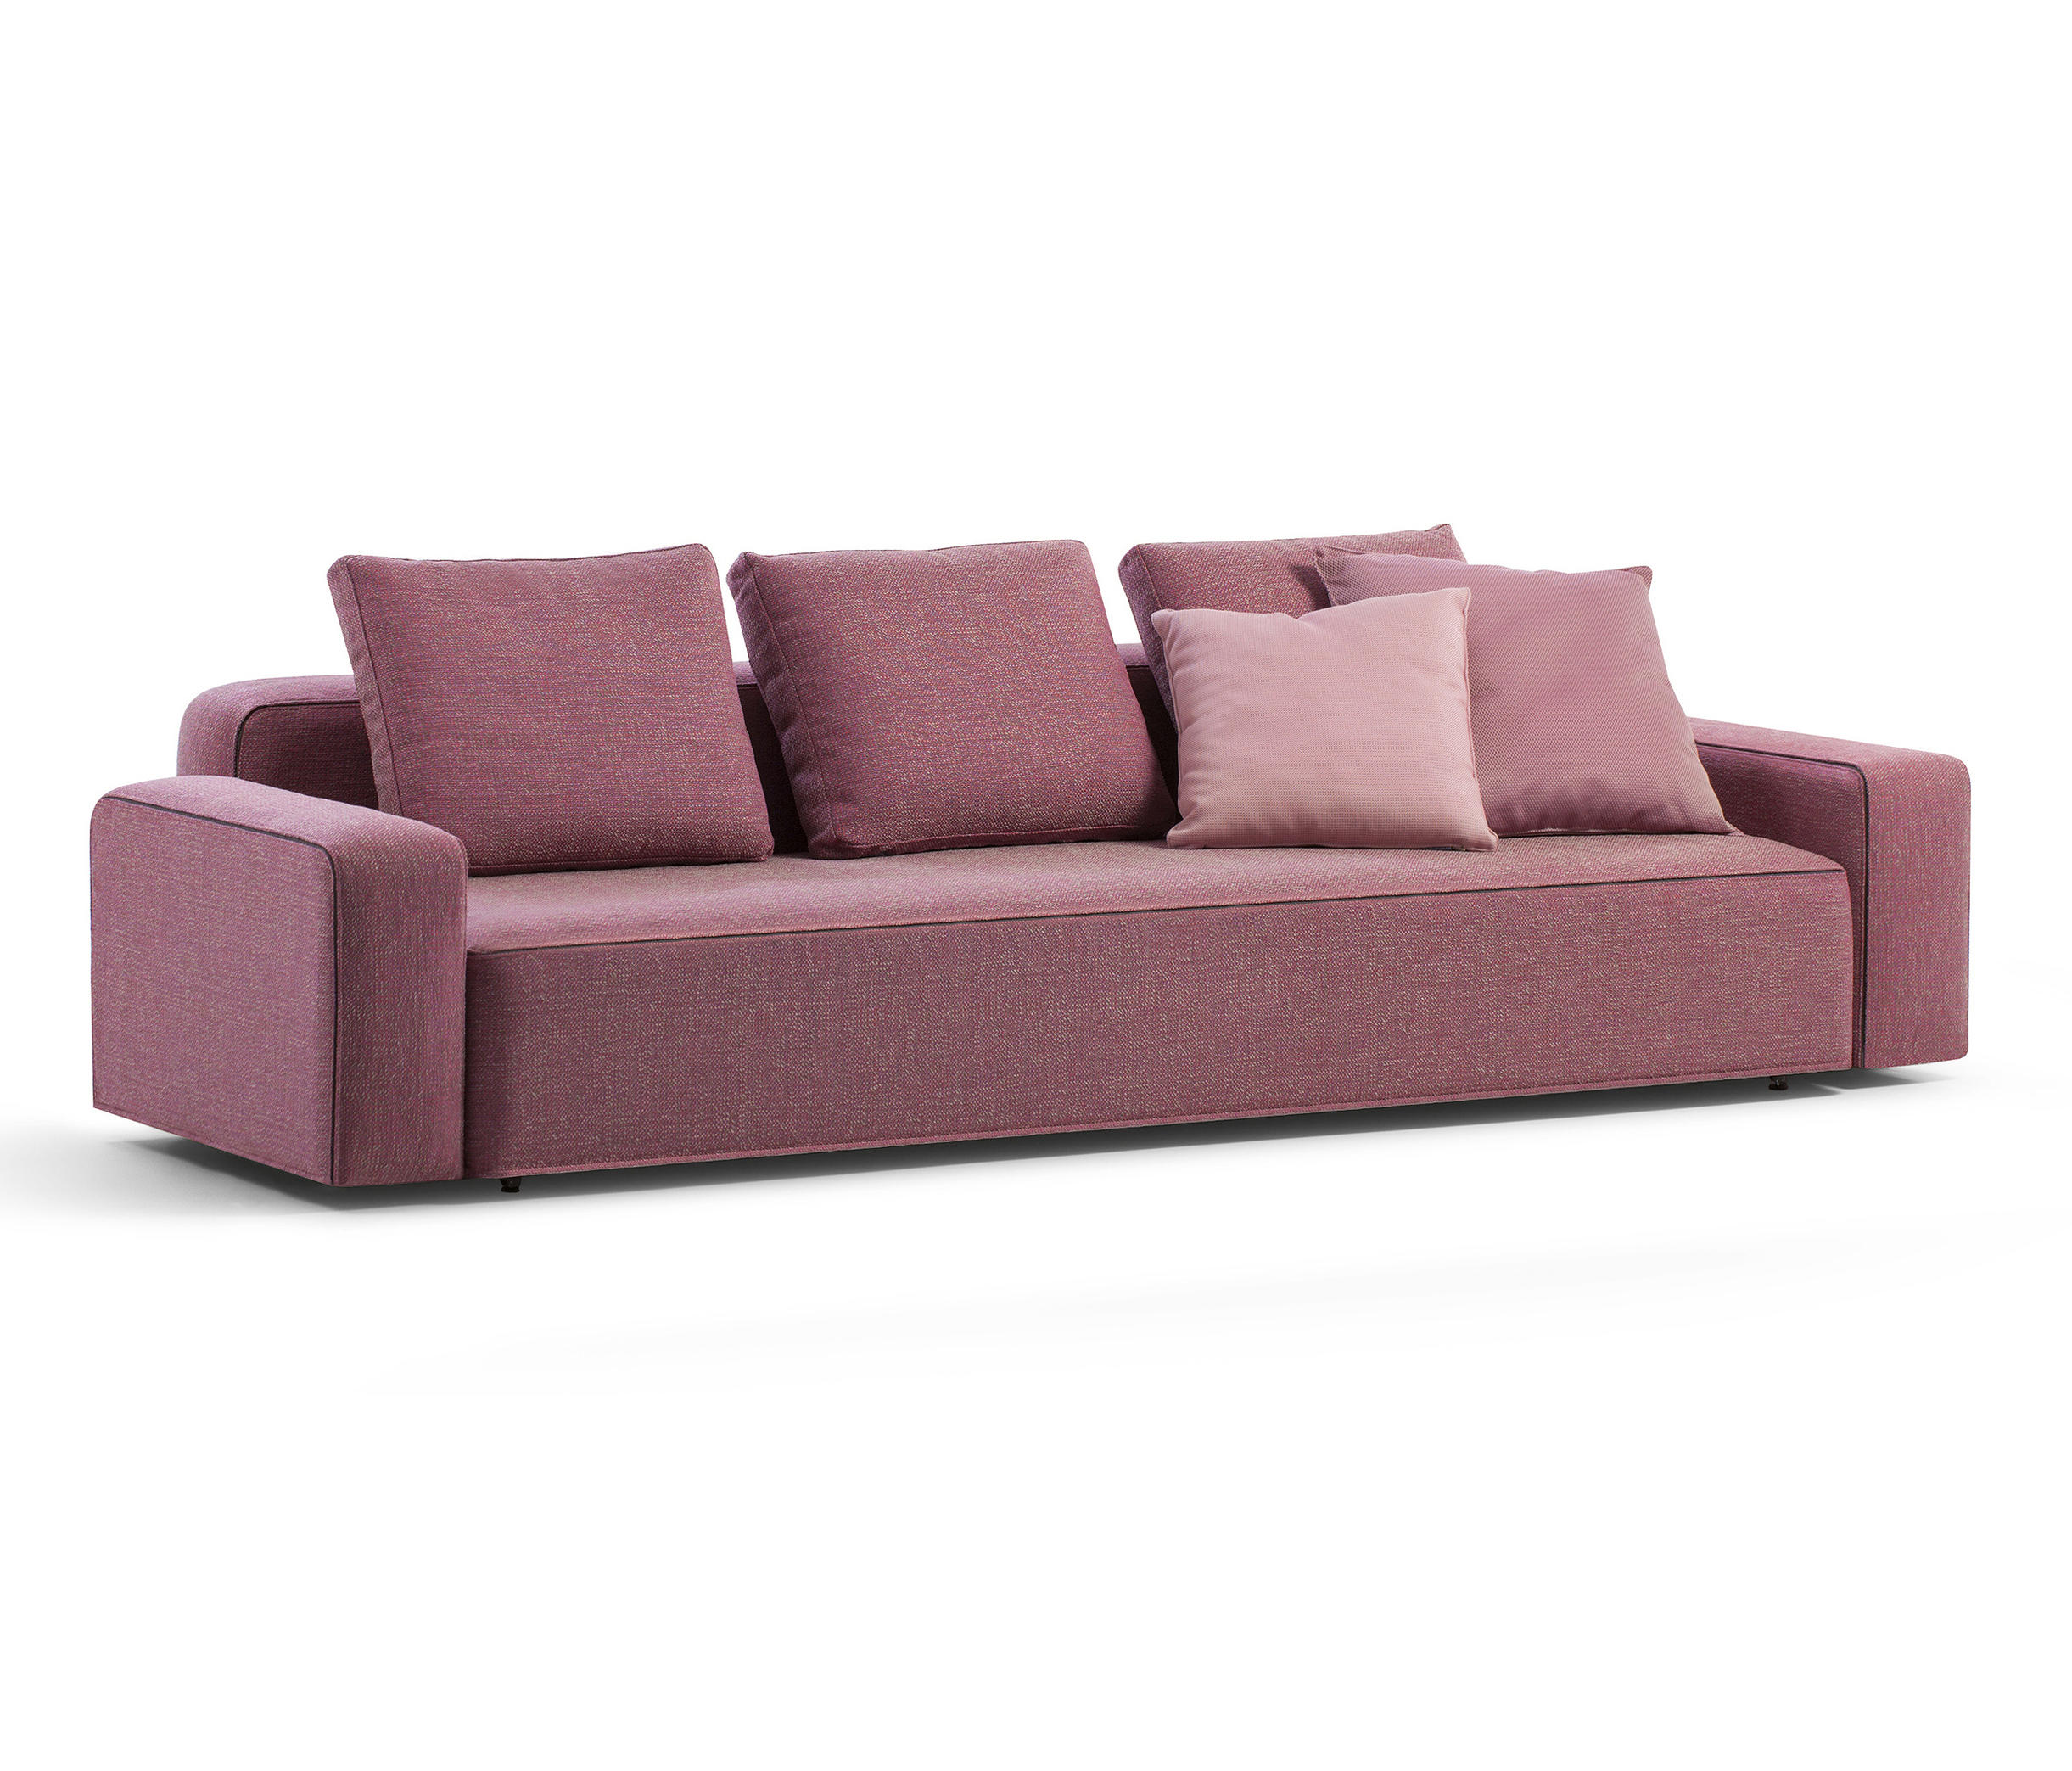 Sofa L 2 X 2 Dandy 3 Seater Sofa Sofas From Roda Architonic